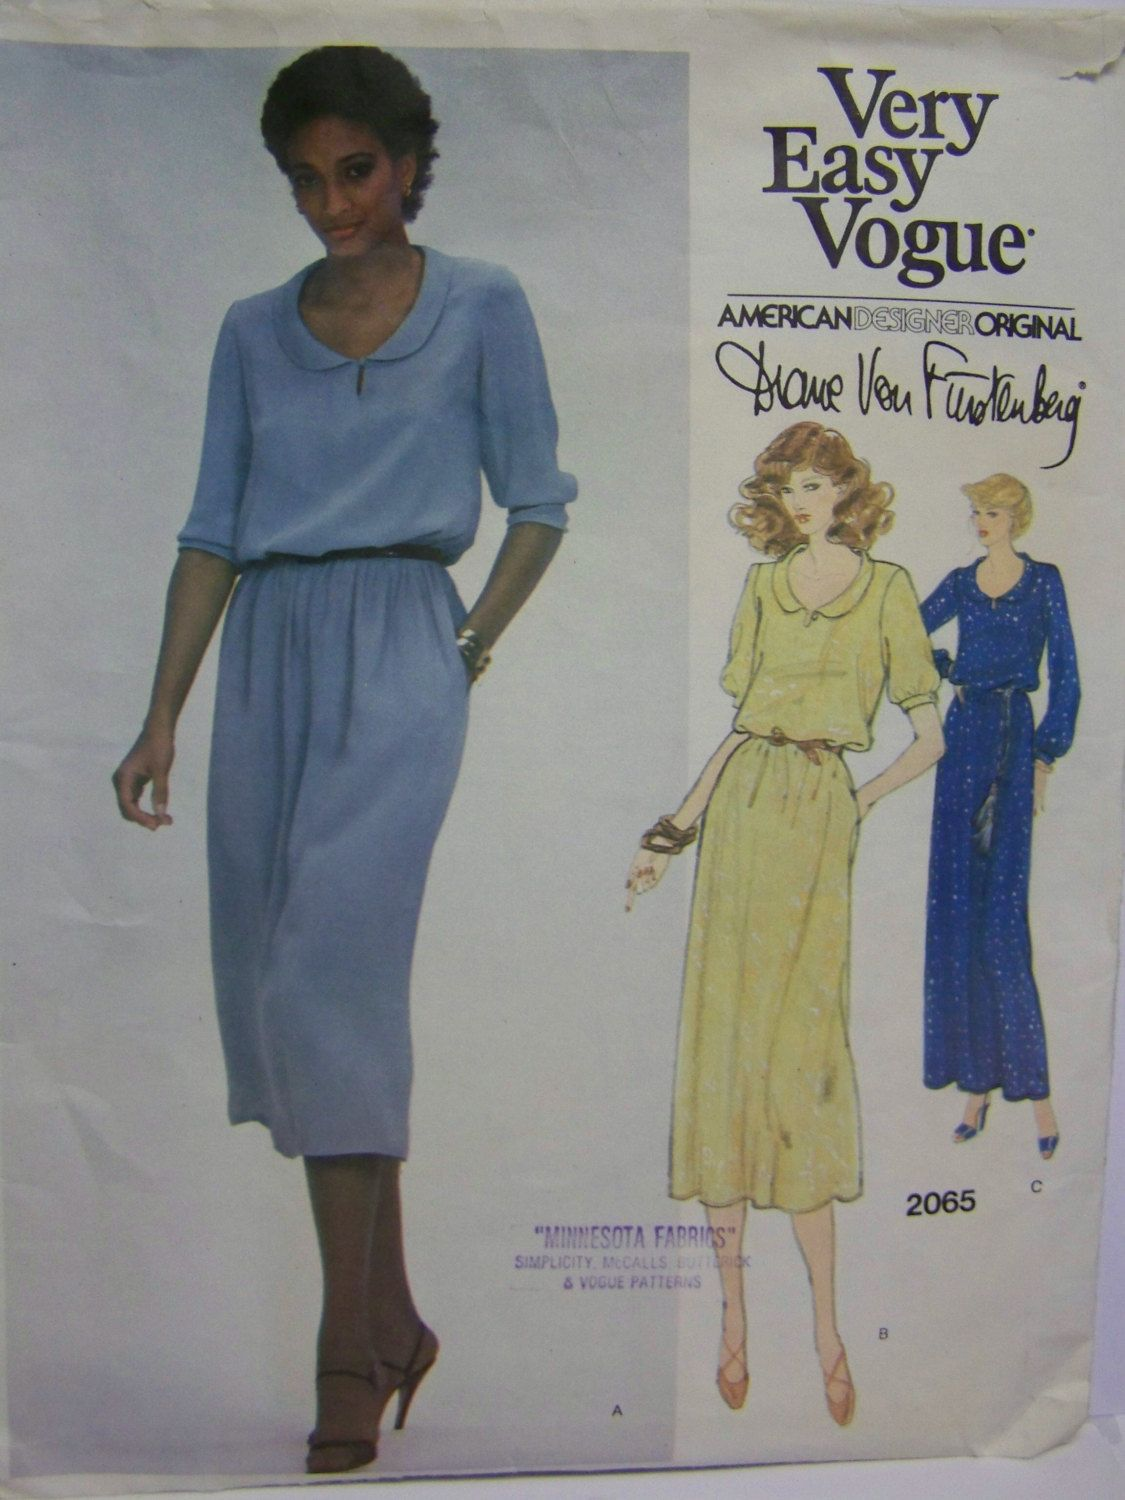 Vintage 1979 Very Easy Vogue 2065 Designer Diane VON FURSTENBERG Dress Pattern Miss sz 8 Complete by RaggsPatternStash on Etsy